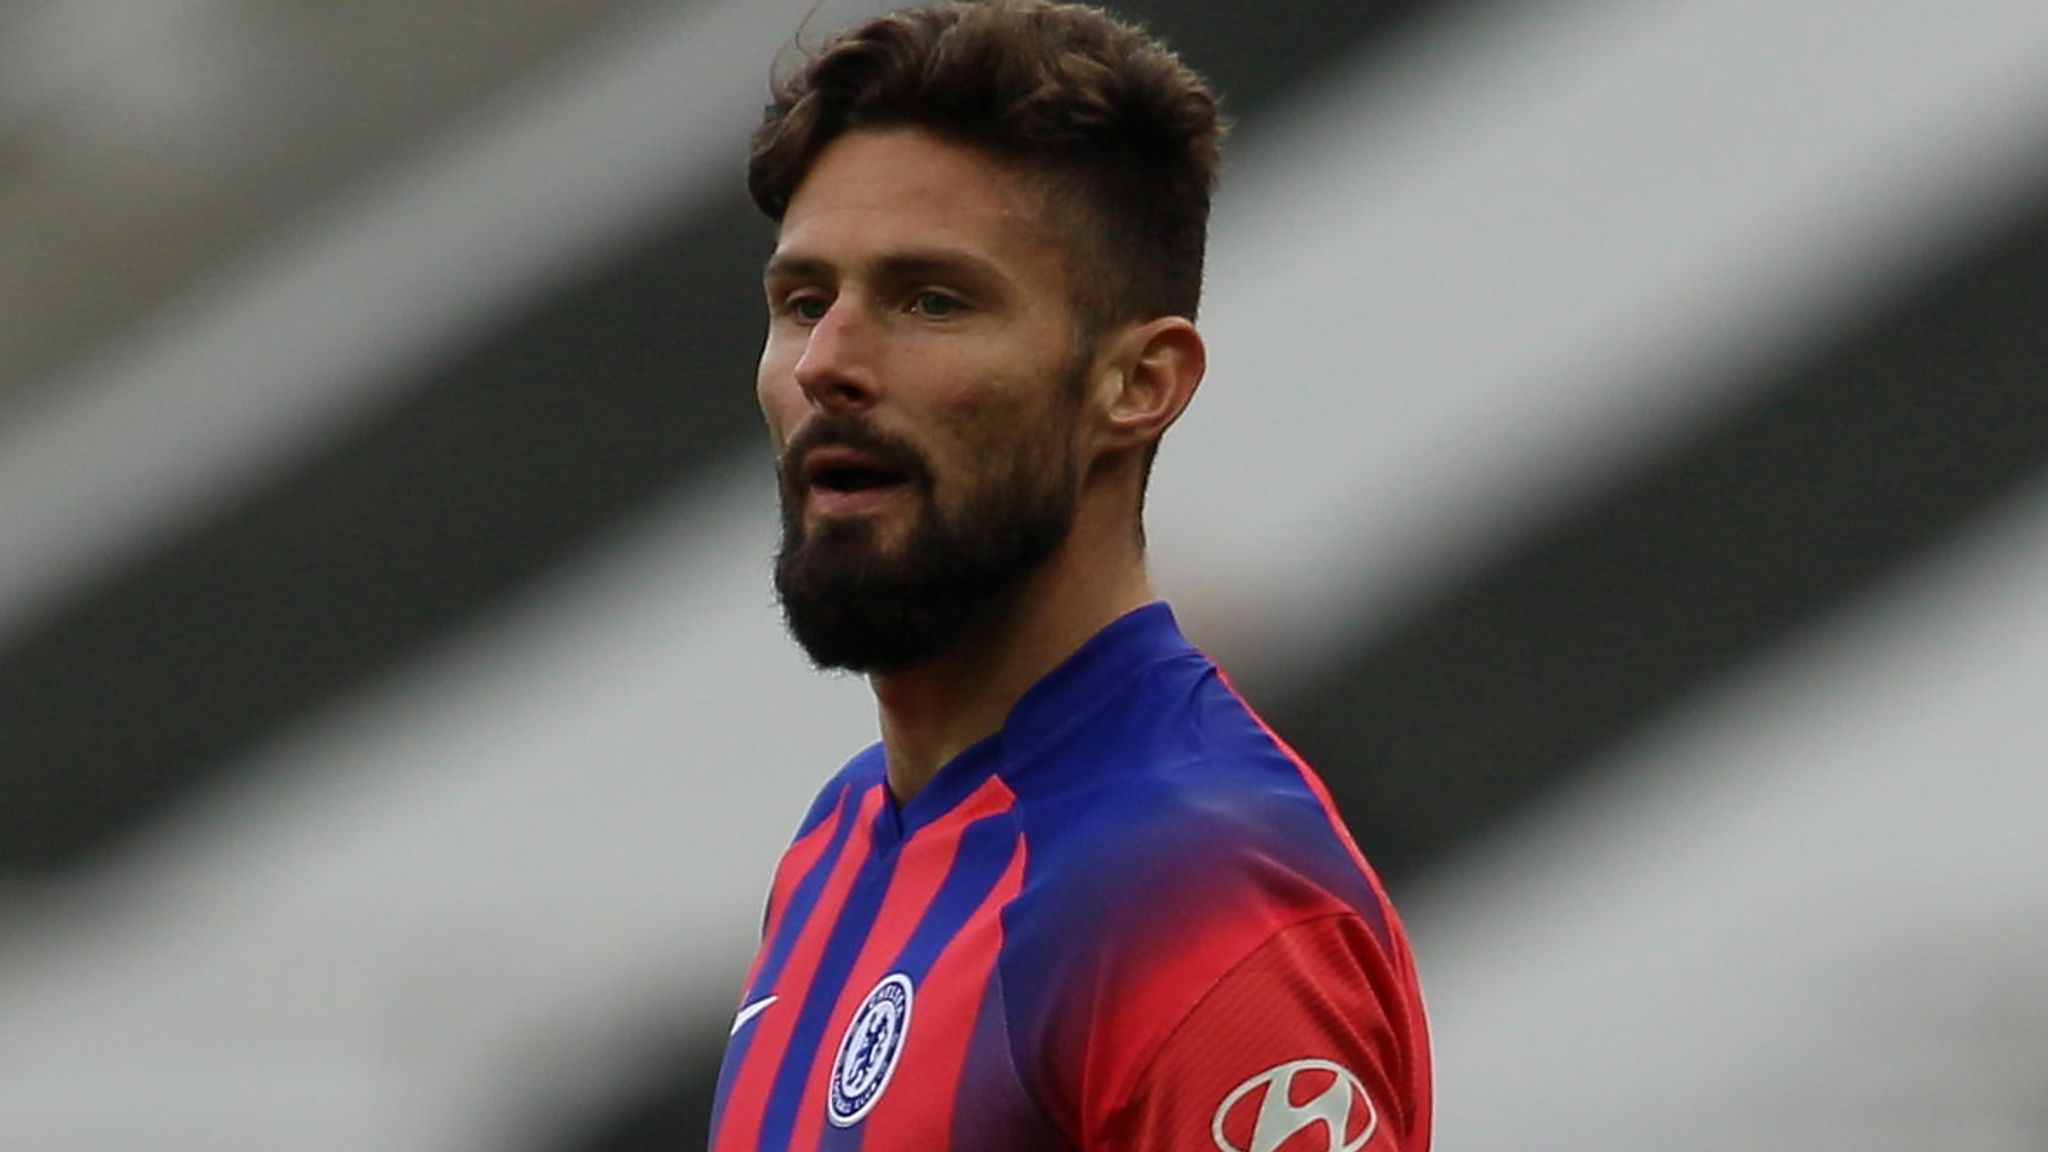 Olivier Giroud Chelsea Striker To Make Decision On Future In January But Frank Lampard Wants Him To Stay Football News Sky Sports